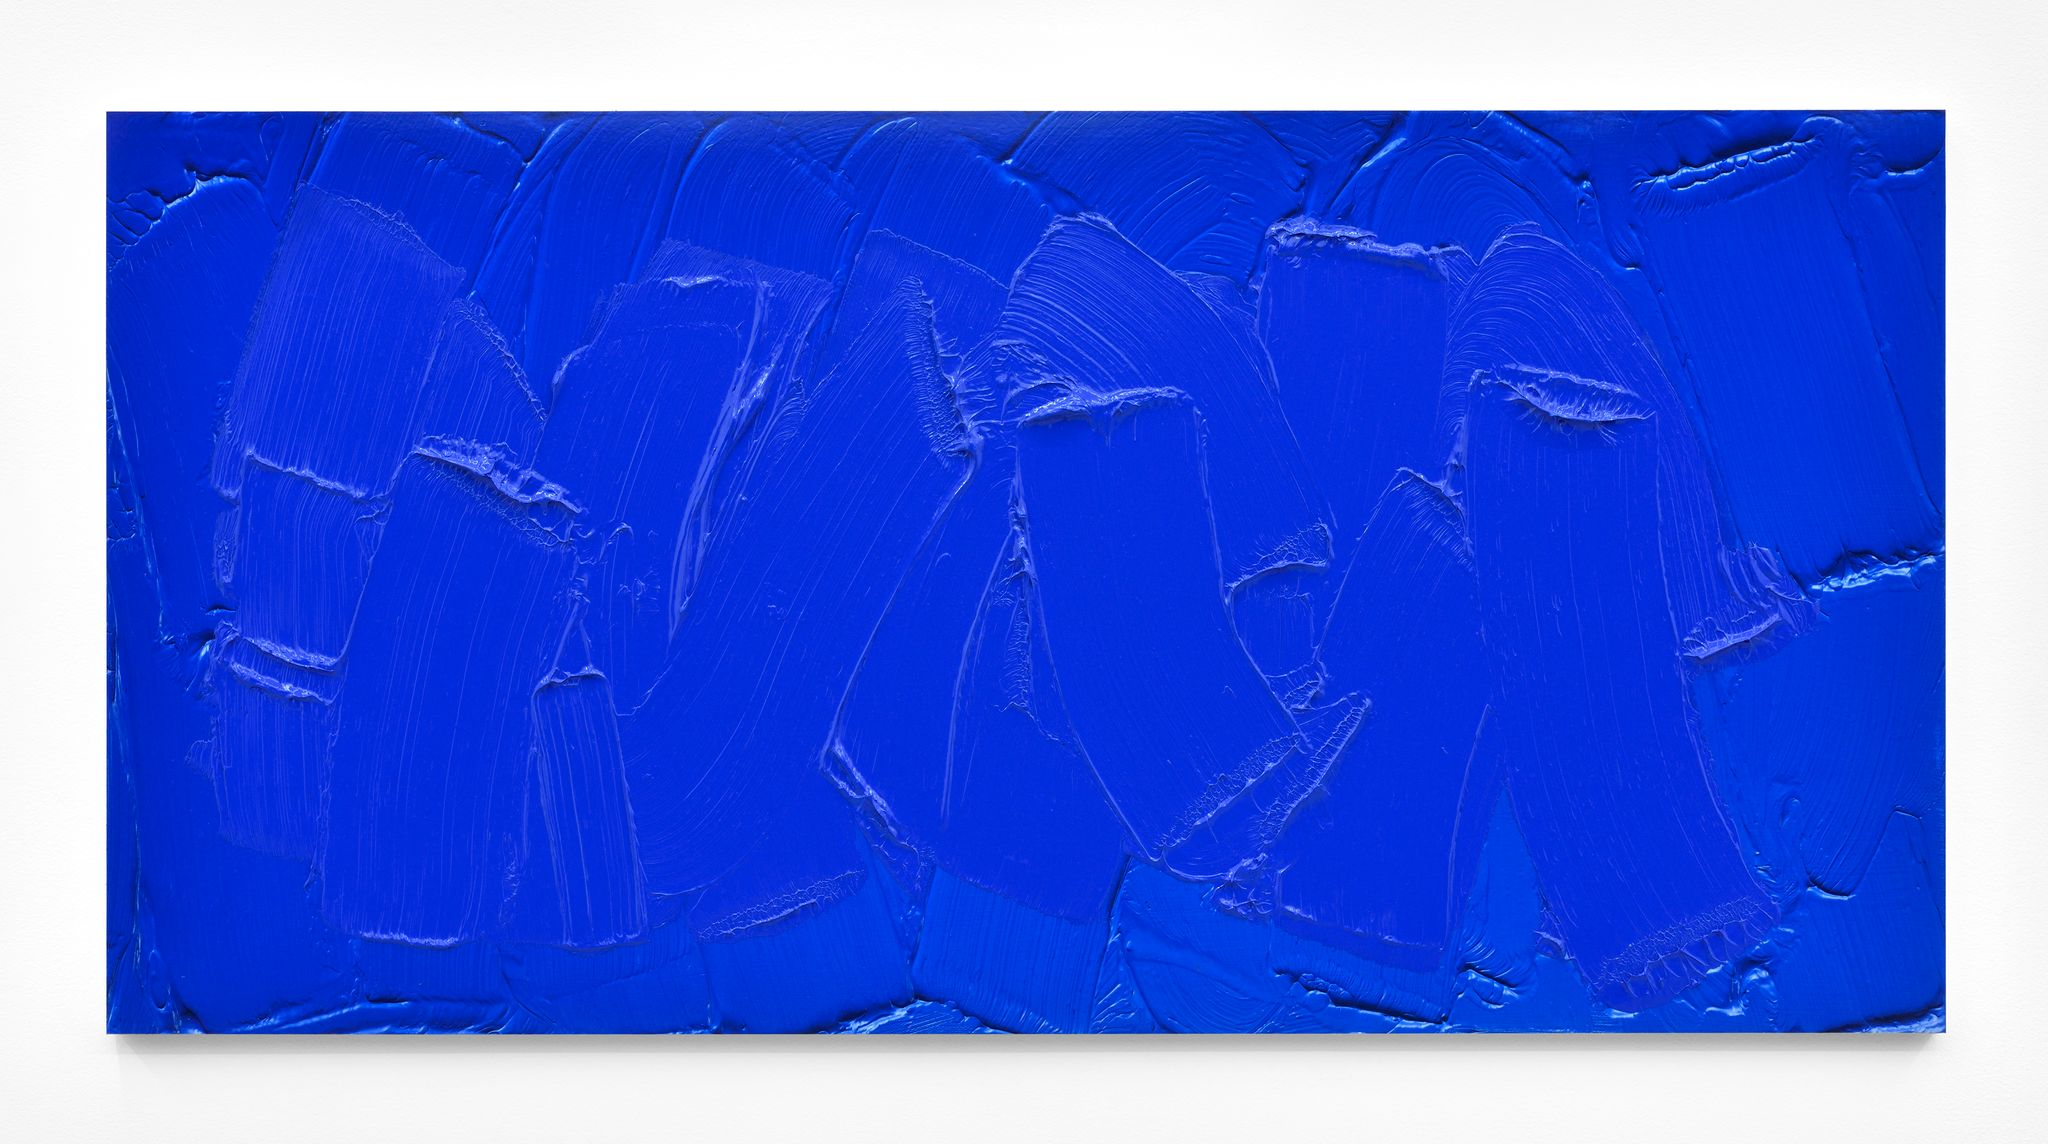 Bertrand Lavier 'Cobalt Blue', 2016. Acrylic on Cibachrome. 59,5 x 120 cm - 23 3/8 x 47 1/4 inches © Bertrand Lavier. Courtesy of the Artist and Almine Rech Gallery. Photo:Rebecca Fanuele